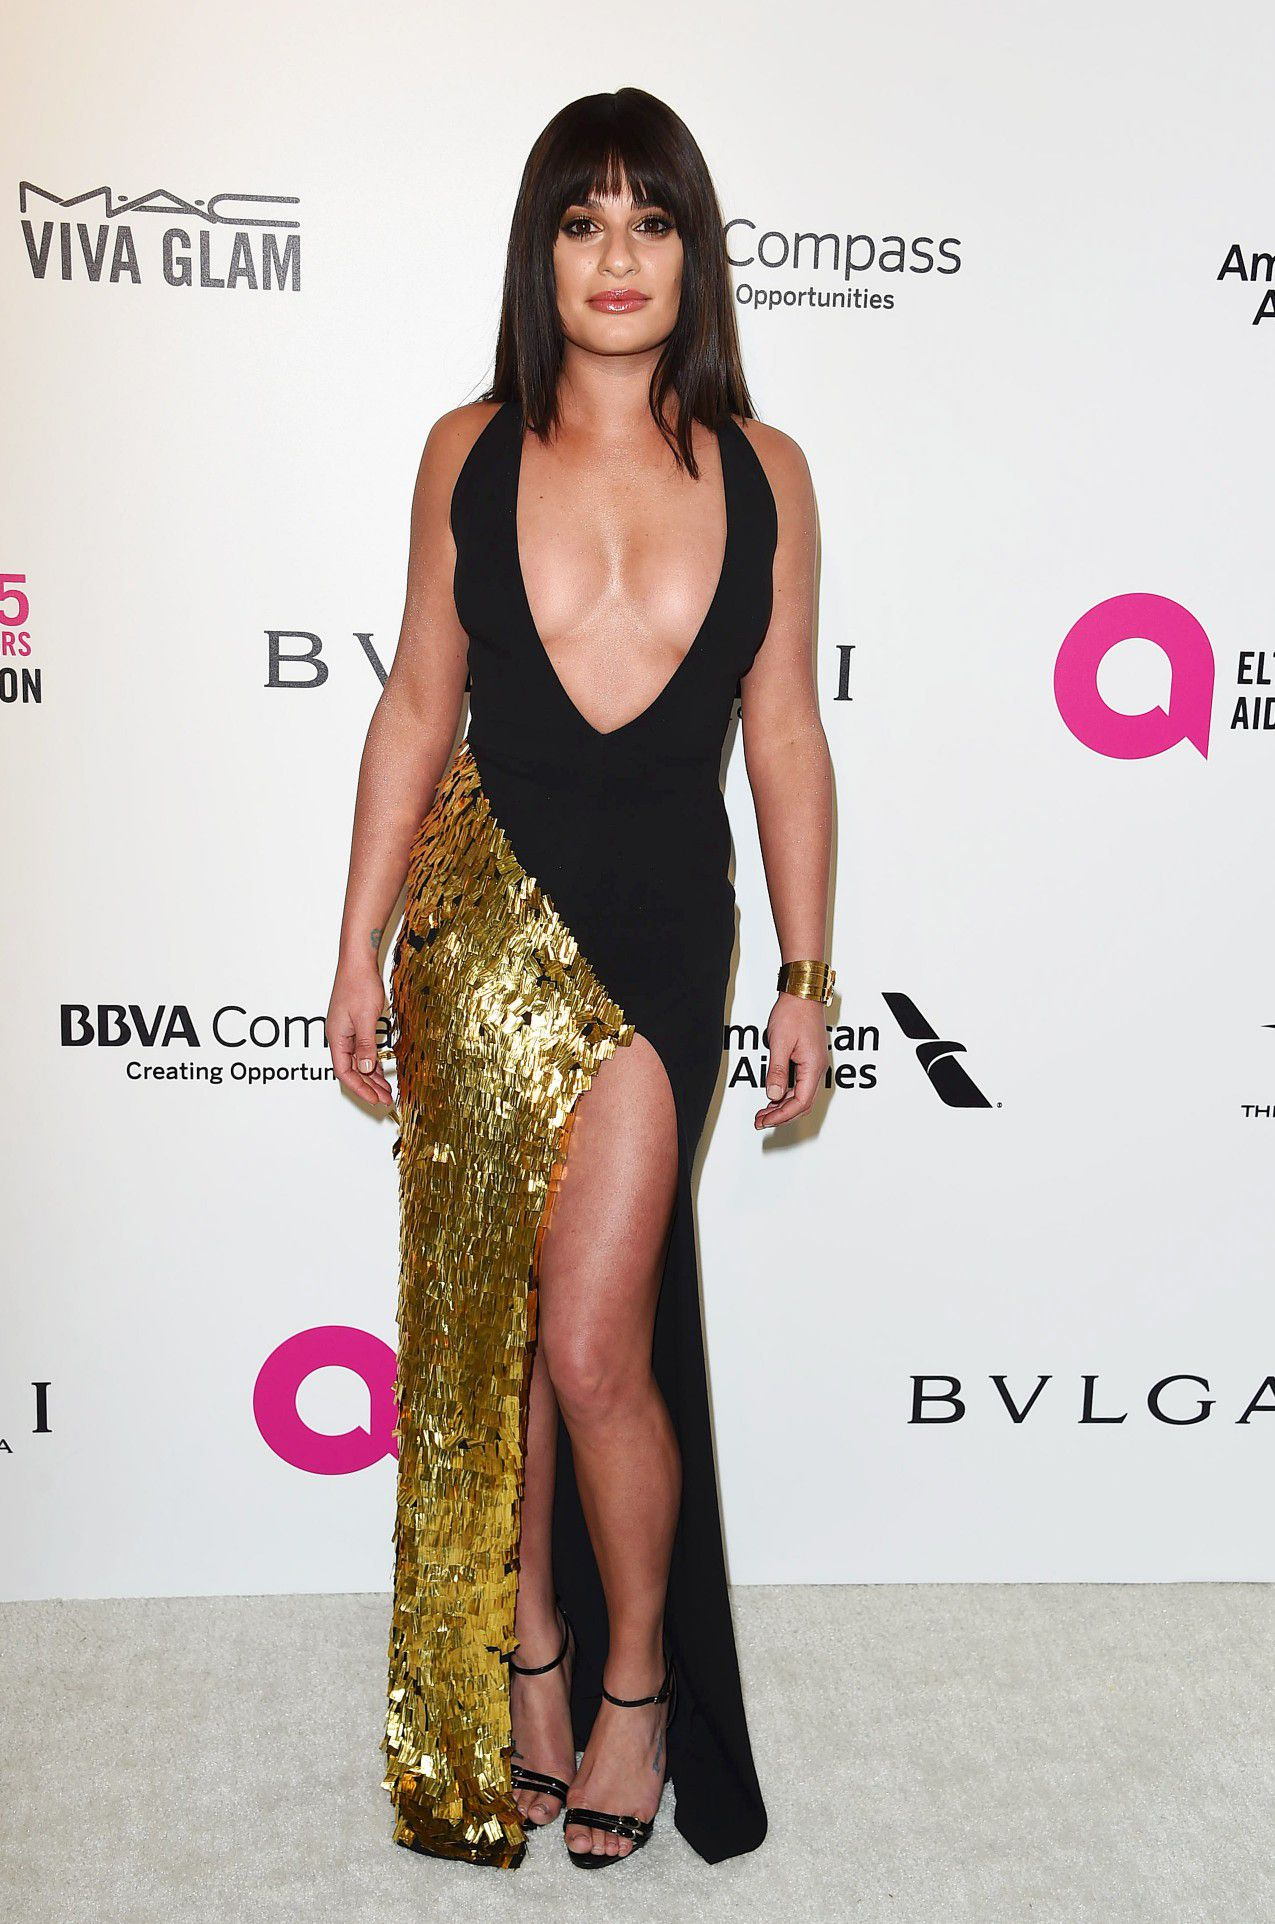 lea-michele-nip-slip-and-cleavage-at-elton-johns-aids-foundation-oscars-viewing-party-2842